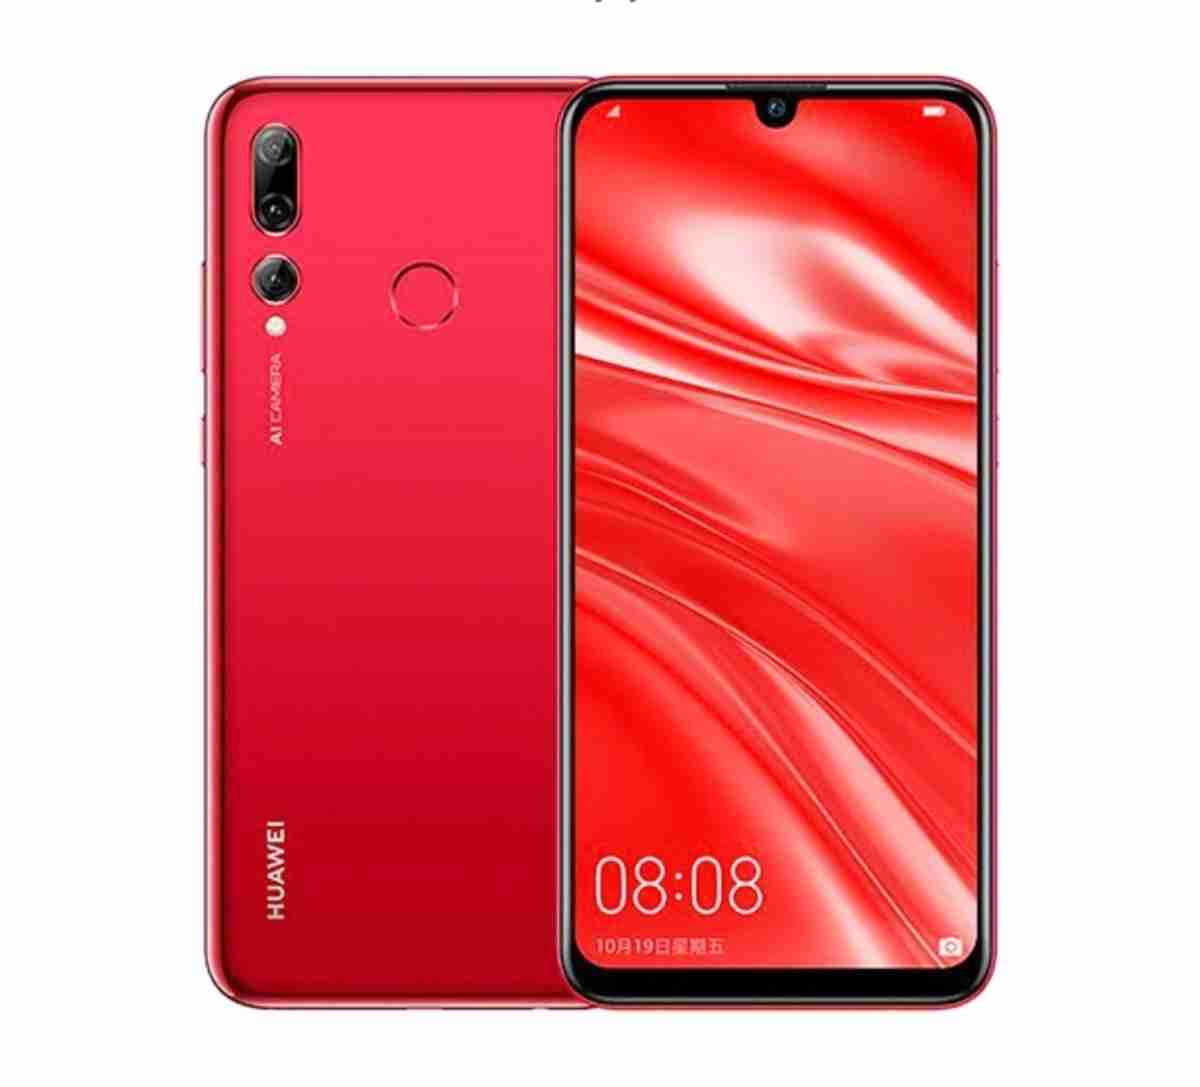 Huawei Enjoy 9s, price, specs and features in Nigeria, Huawei Enjoy 9s price in Nigeria, specs and price of Huawei Enjoy 9s in Nigeria, how much is Huawei Enjoy 9s